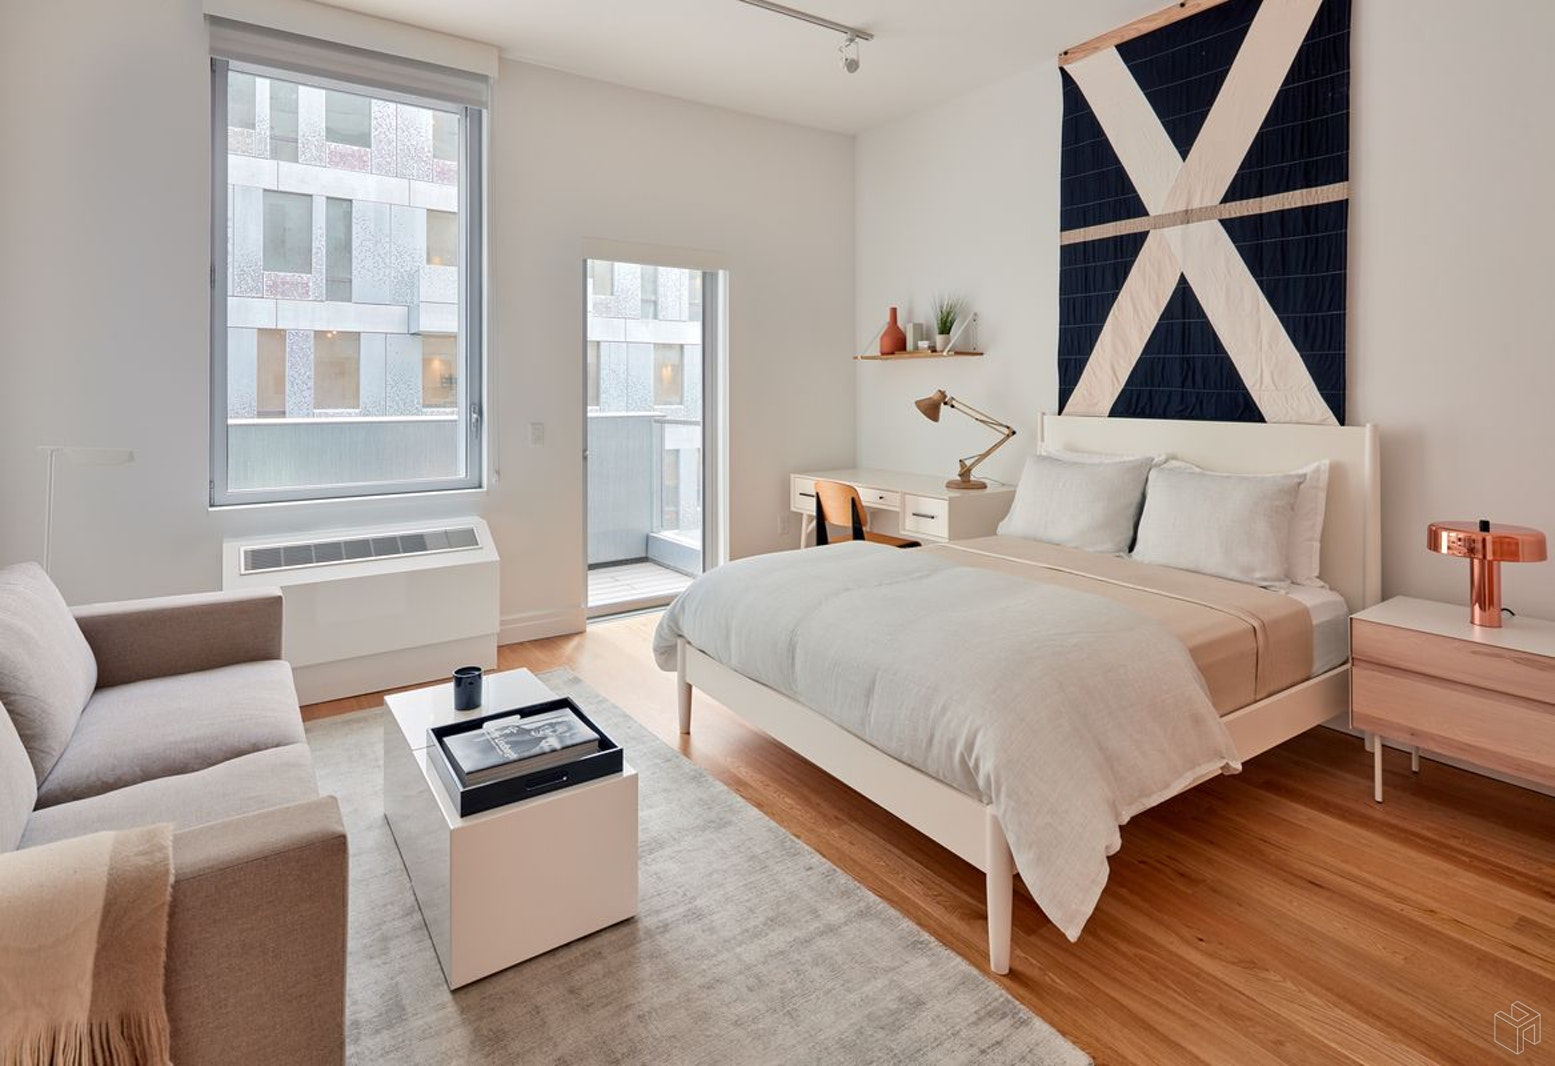 325 Kent Avenue Williamsburg Brooklyn Ny 11249 2 500 Property For